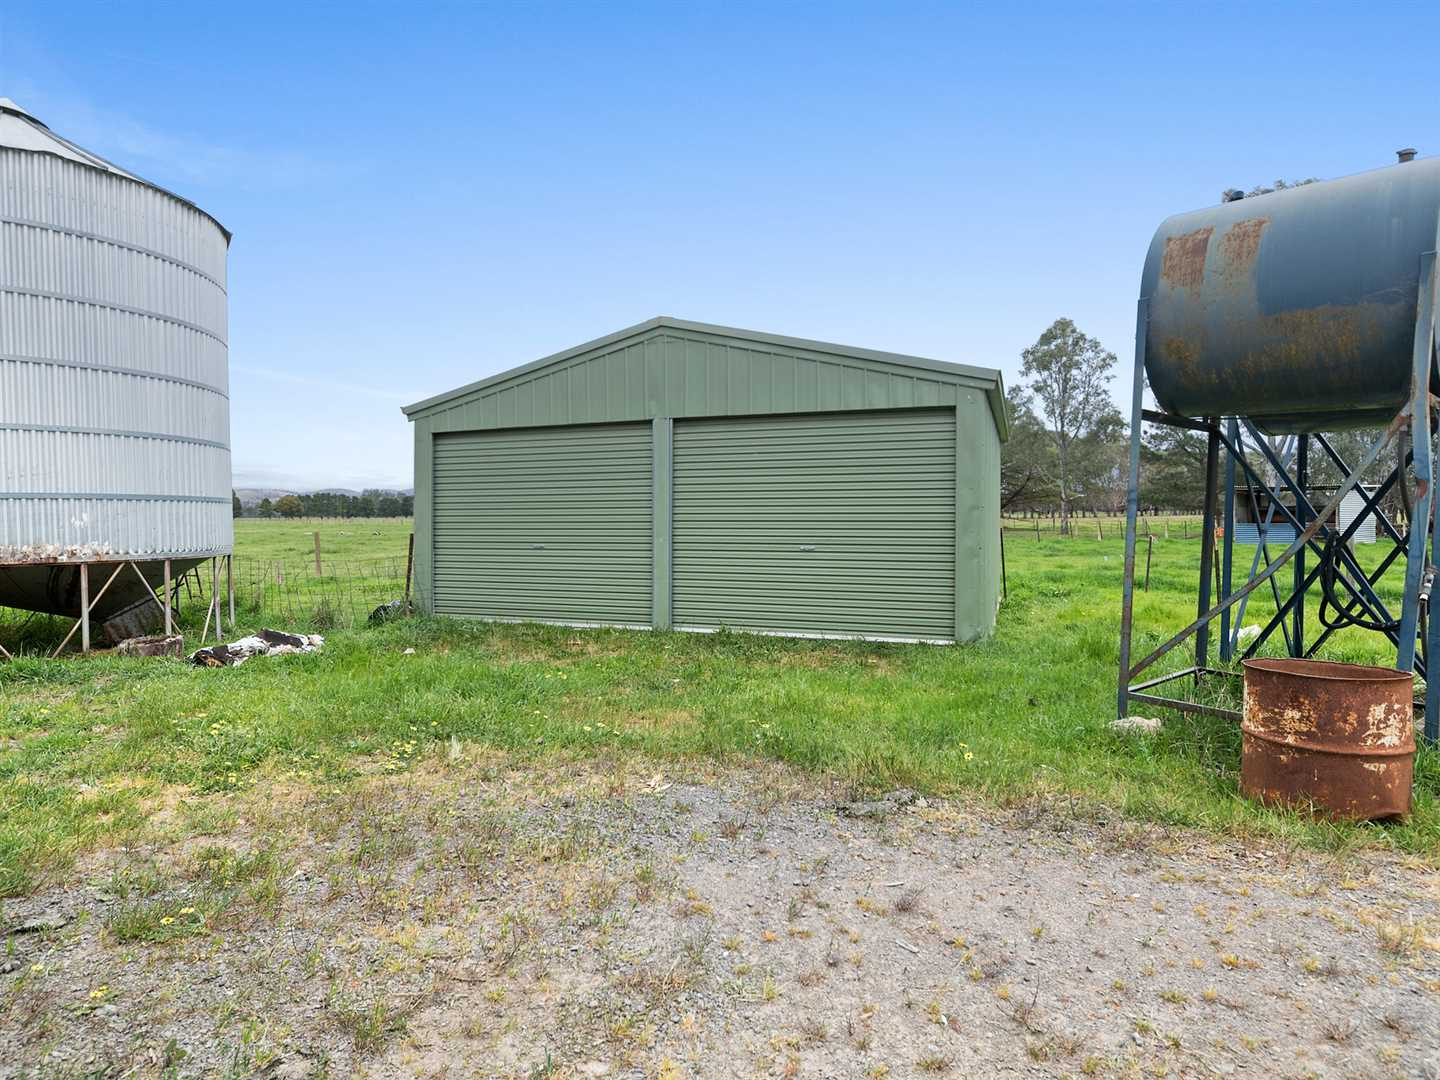 Lockable Shed and Silo, Fuel Bowser